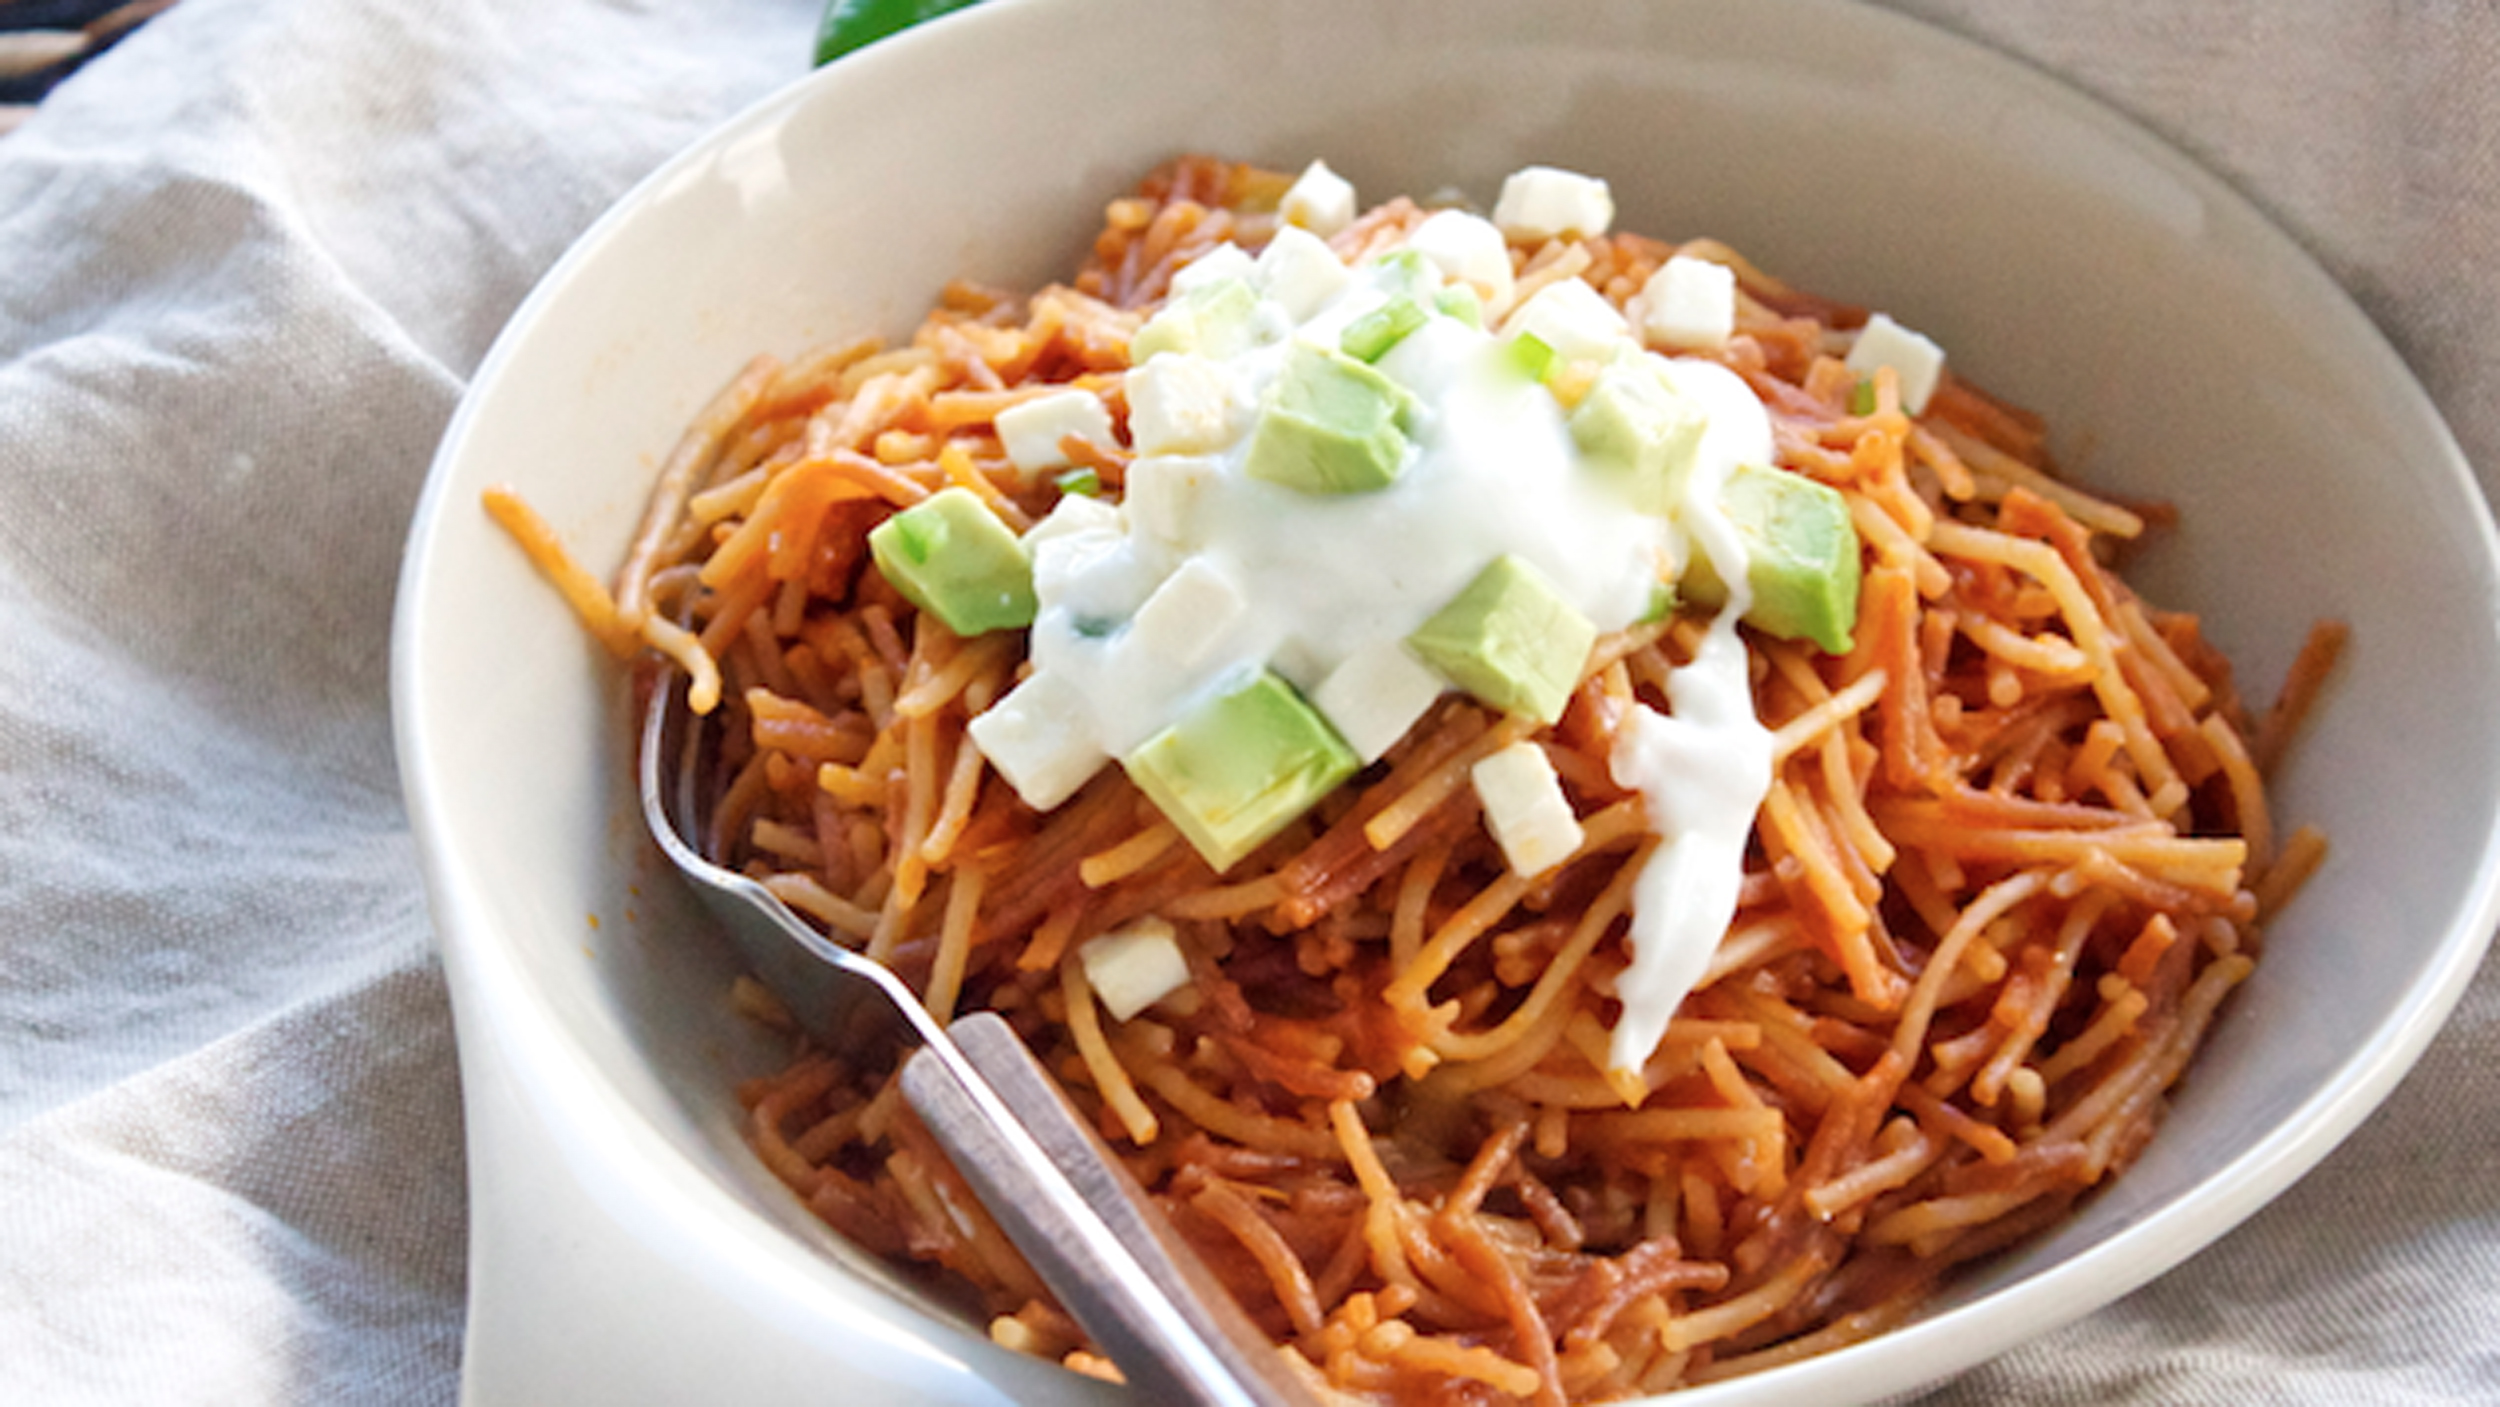 Real mexican food try sopa seca an easy noodle casserole for Mexican food